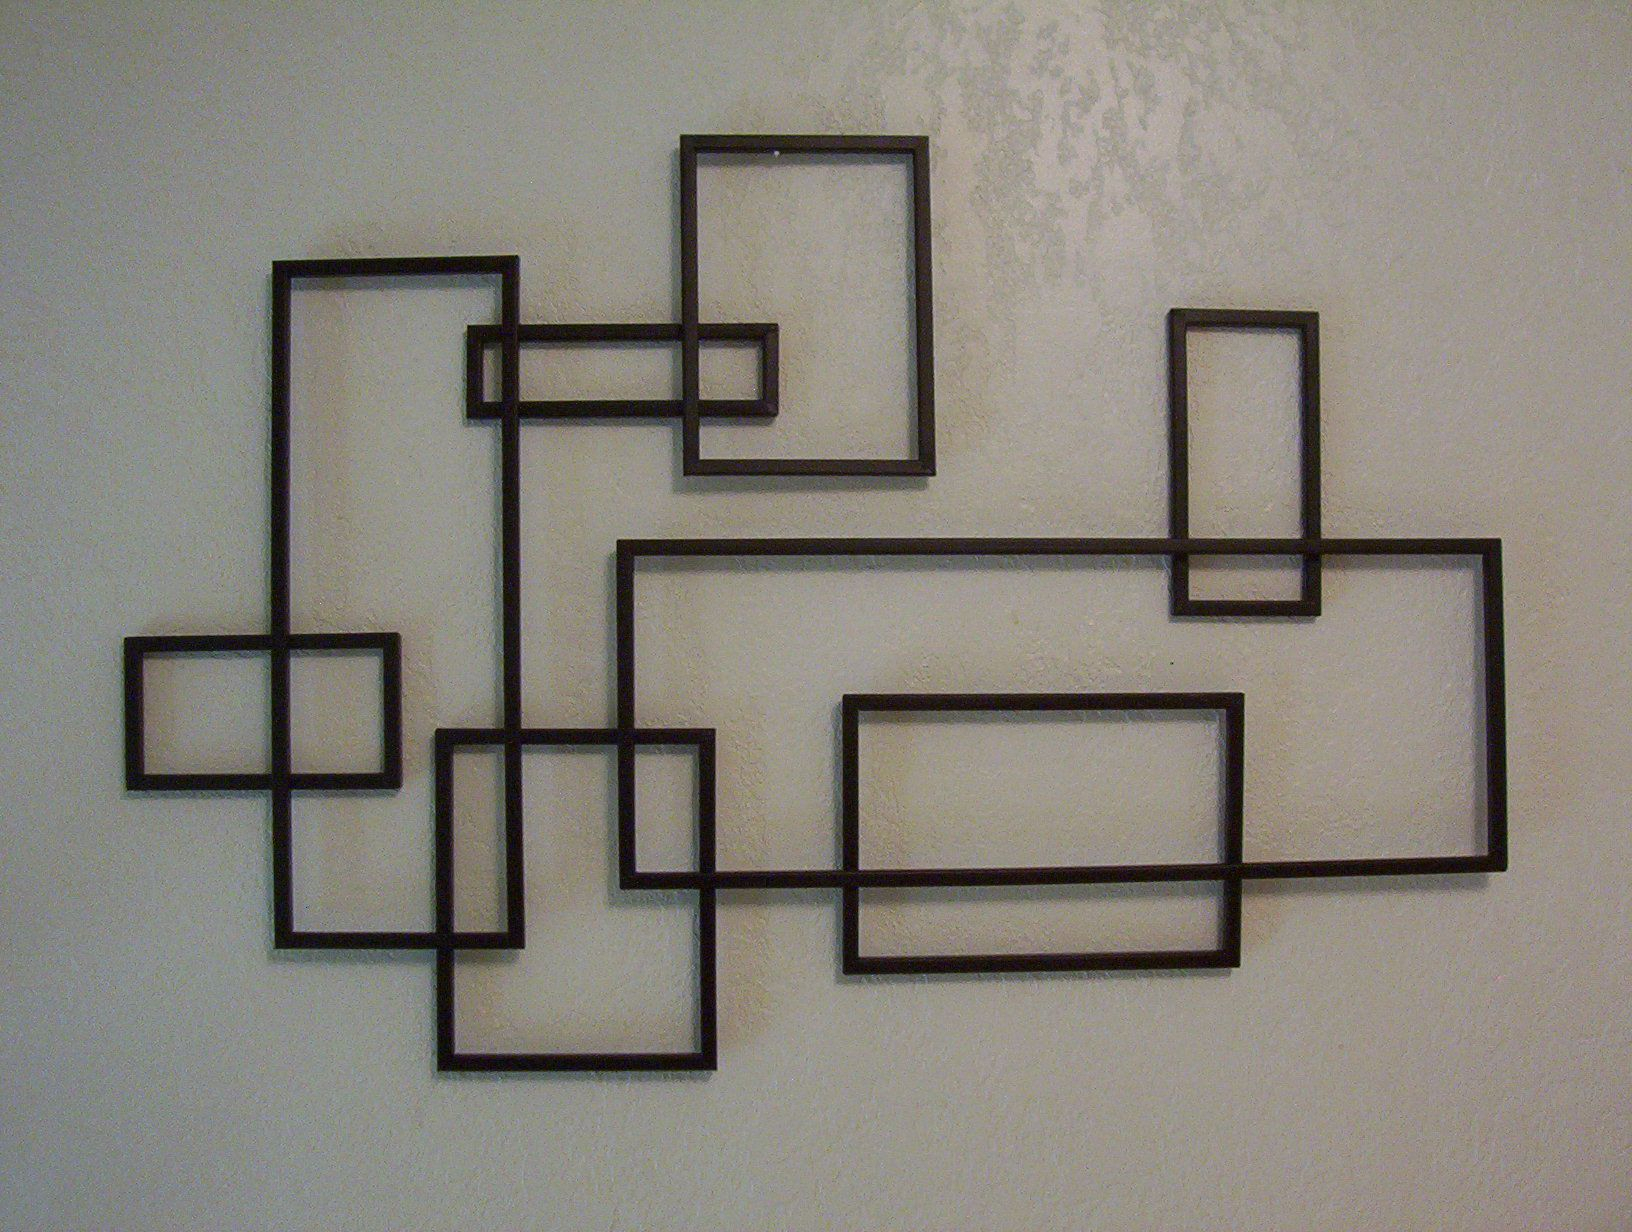 Contemporary Geometric Wall Decor Intended For Newest Mid Century Modern ~ De Stijl Style Geometric Metal Wall Sculpture (View 3 of 20)